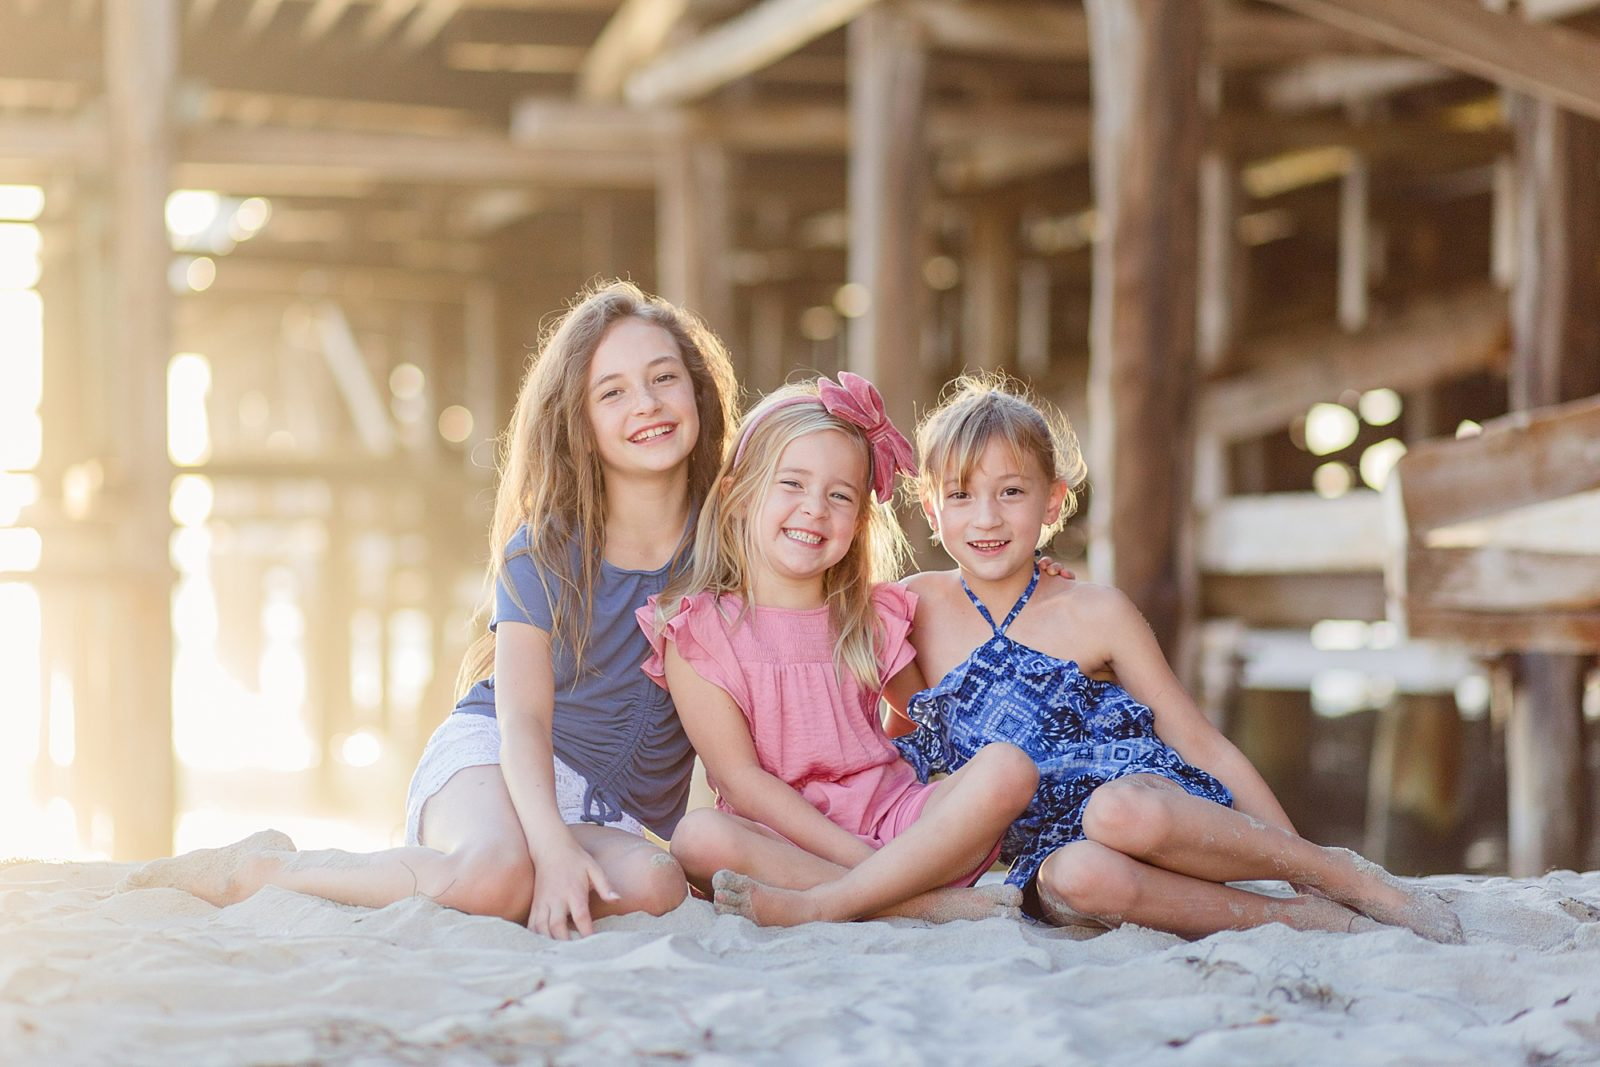 San Diego Photographers | Amy Gray Photography San Diego